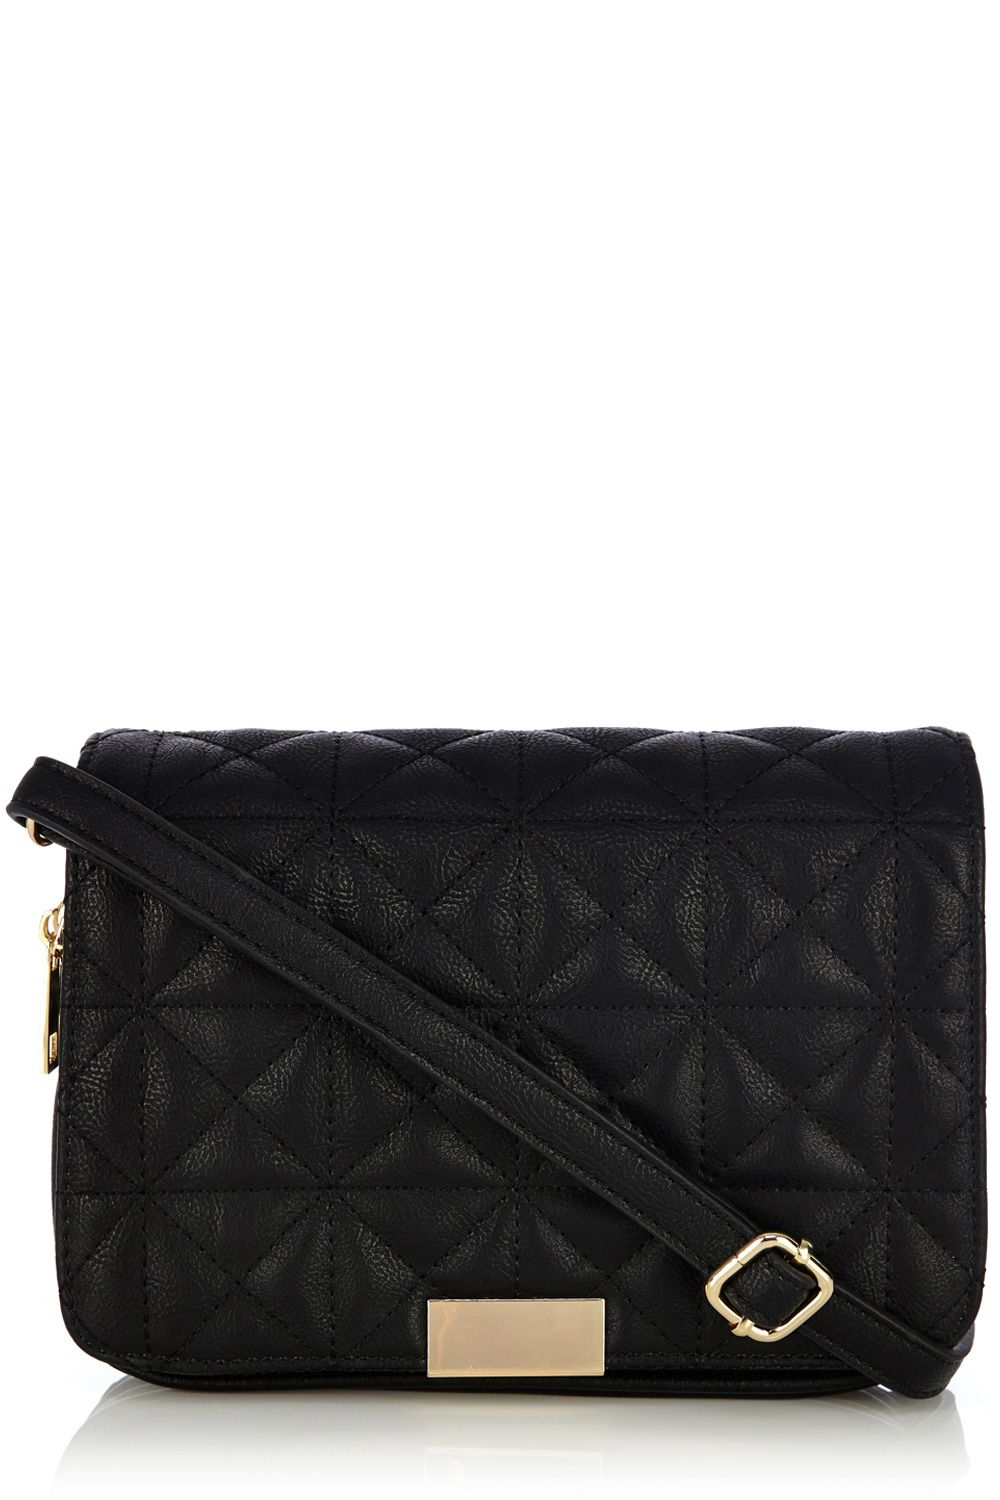 Carmen quilted satchel bag